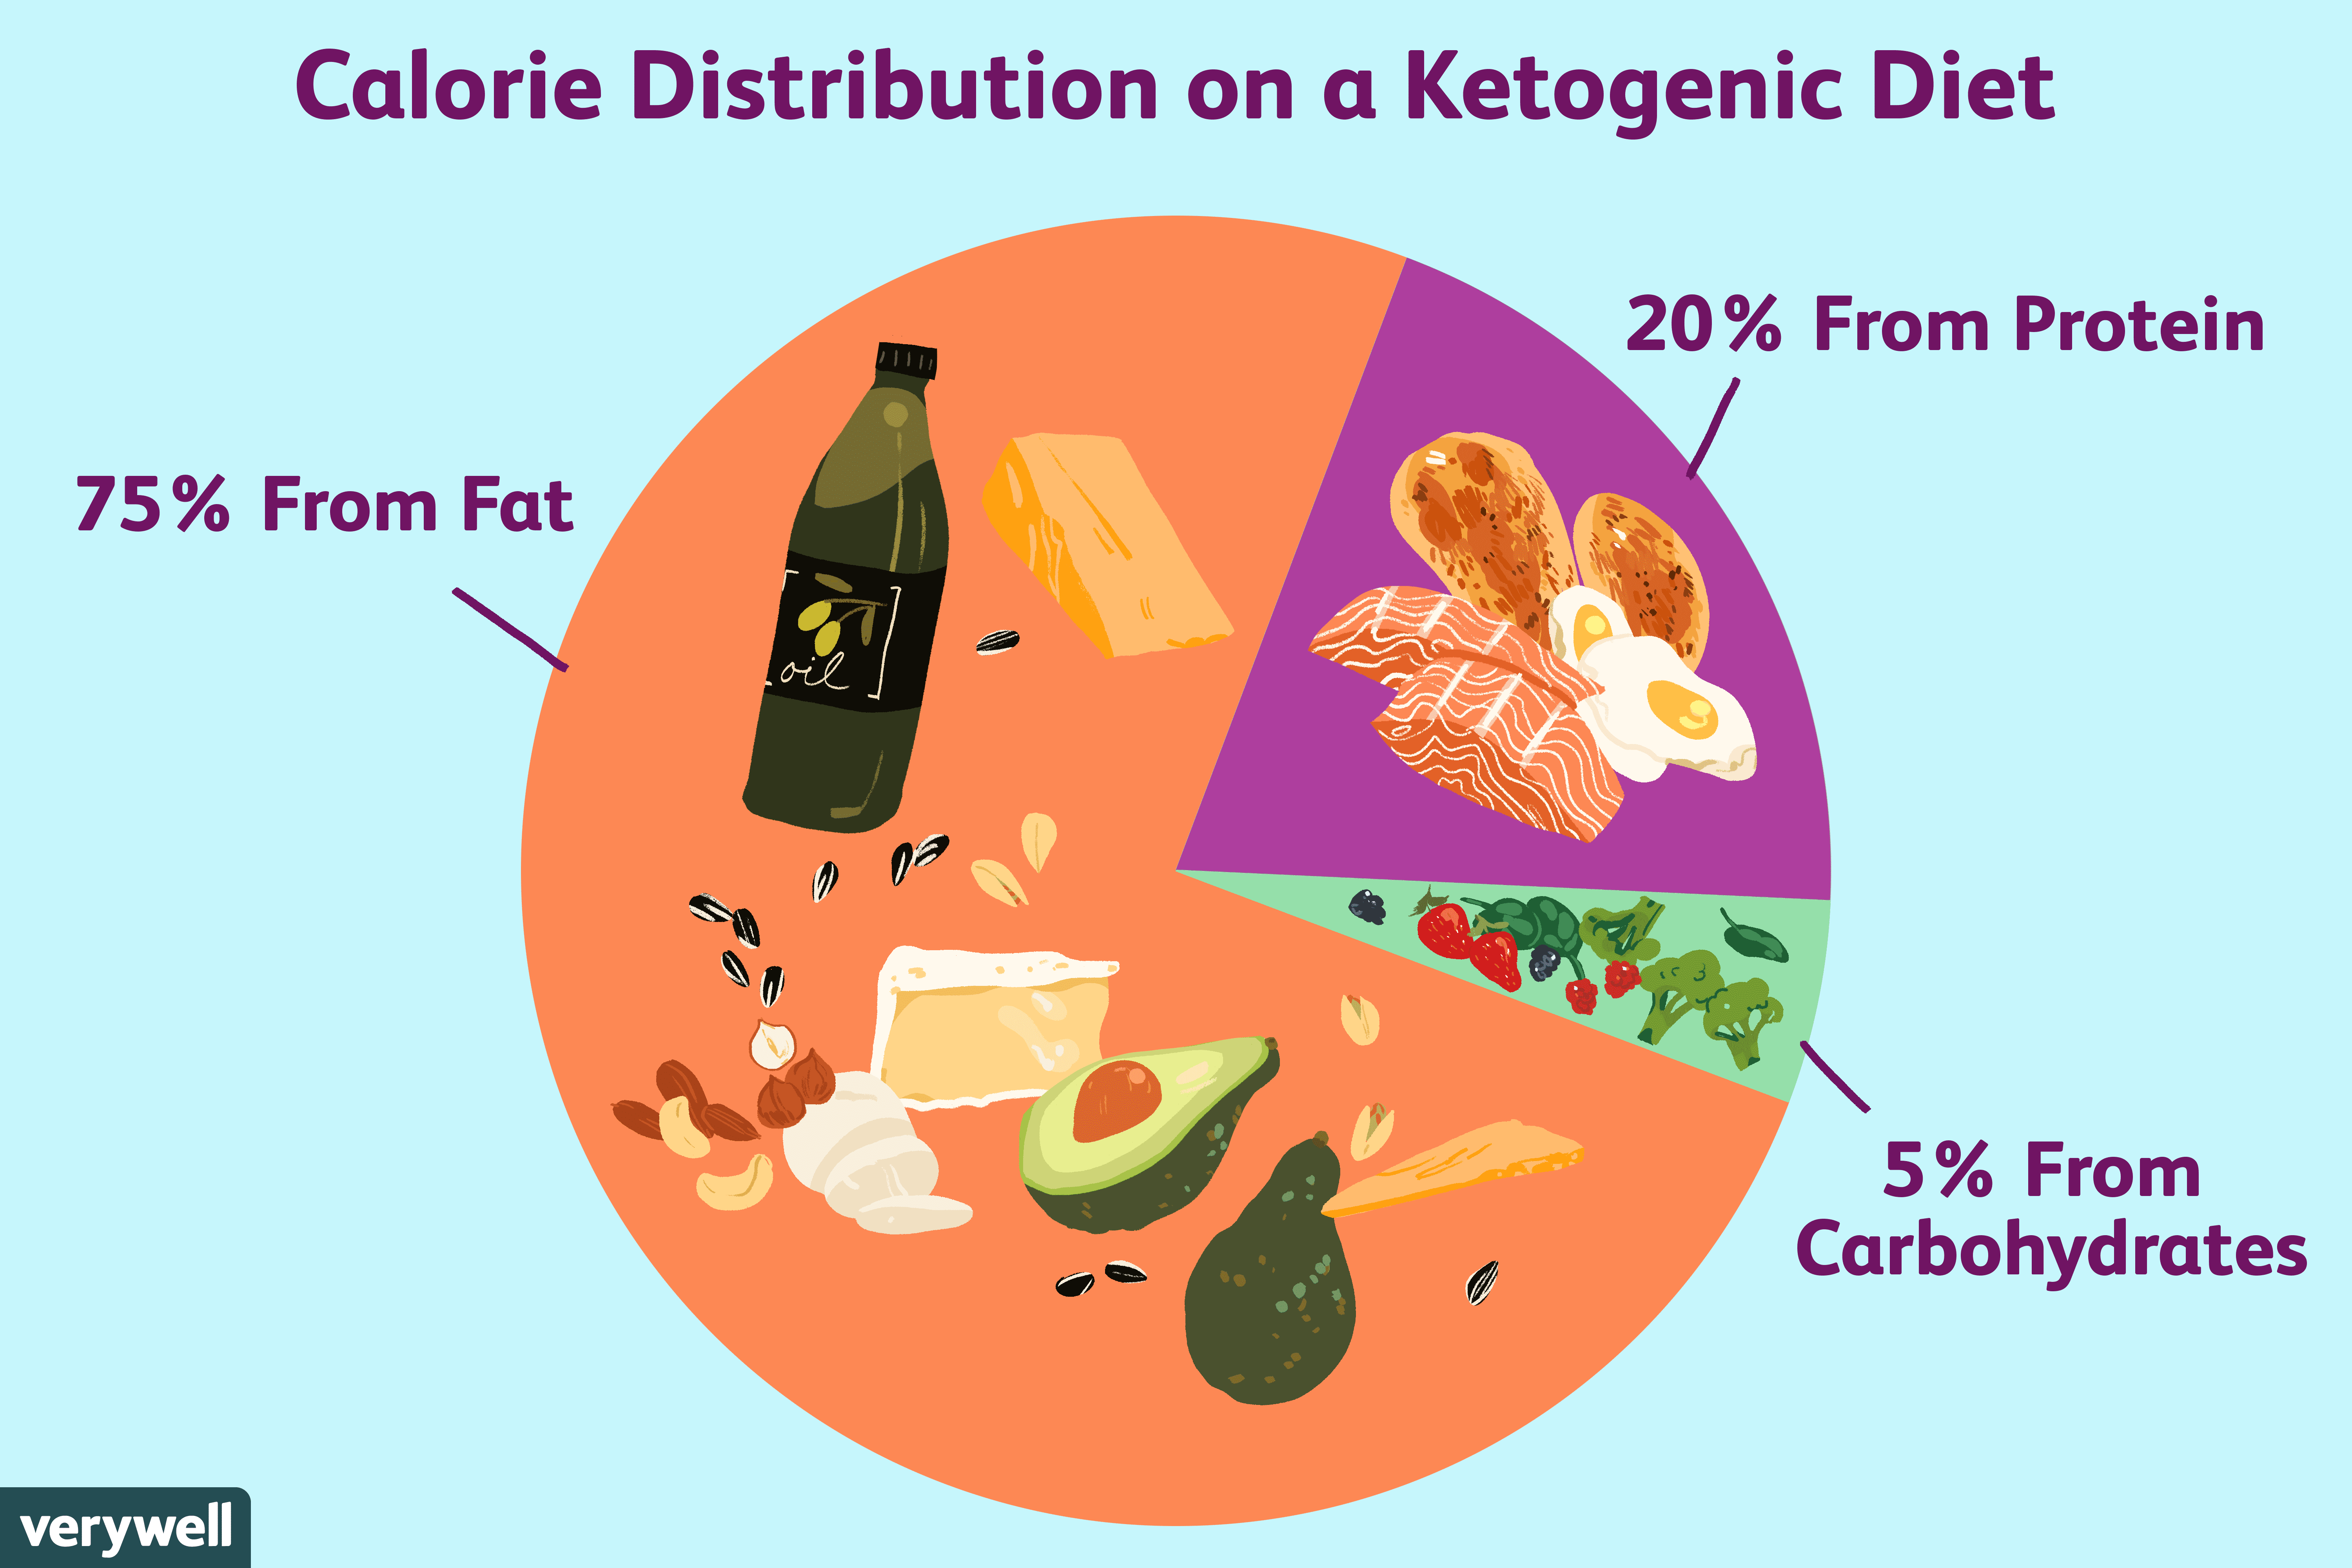 Getting Started on a Ketogenic Diet